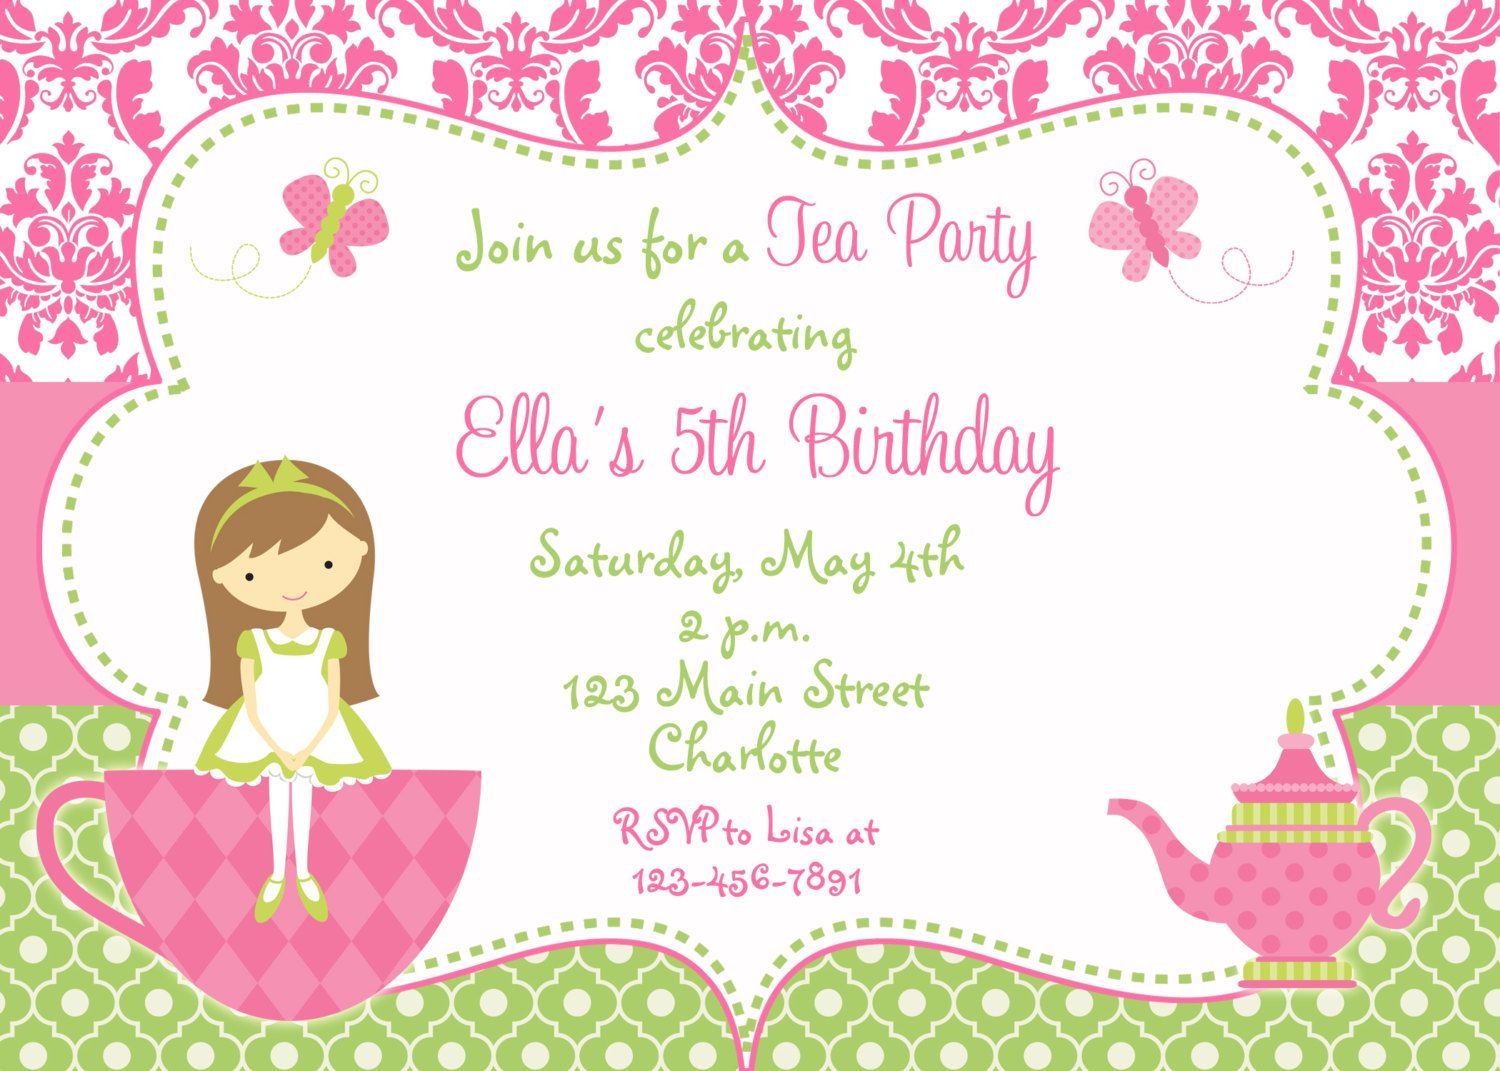 Superb image for free printable tea party invitation templates